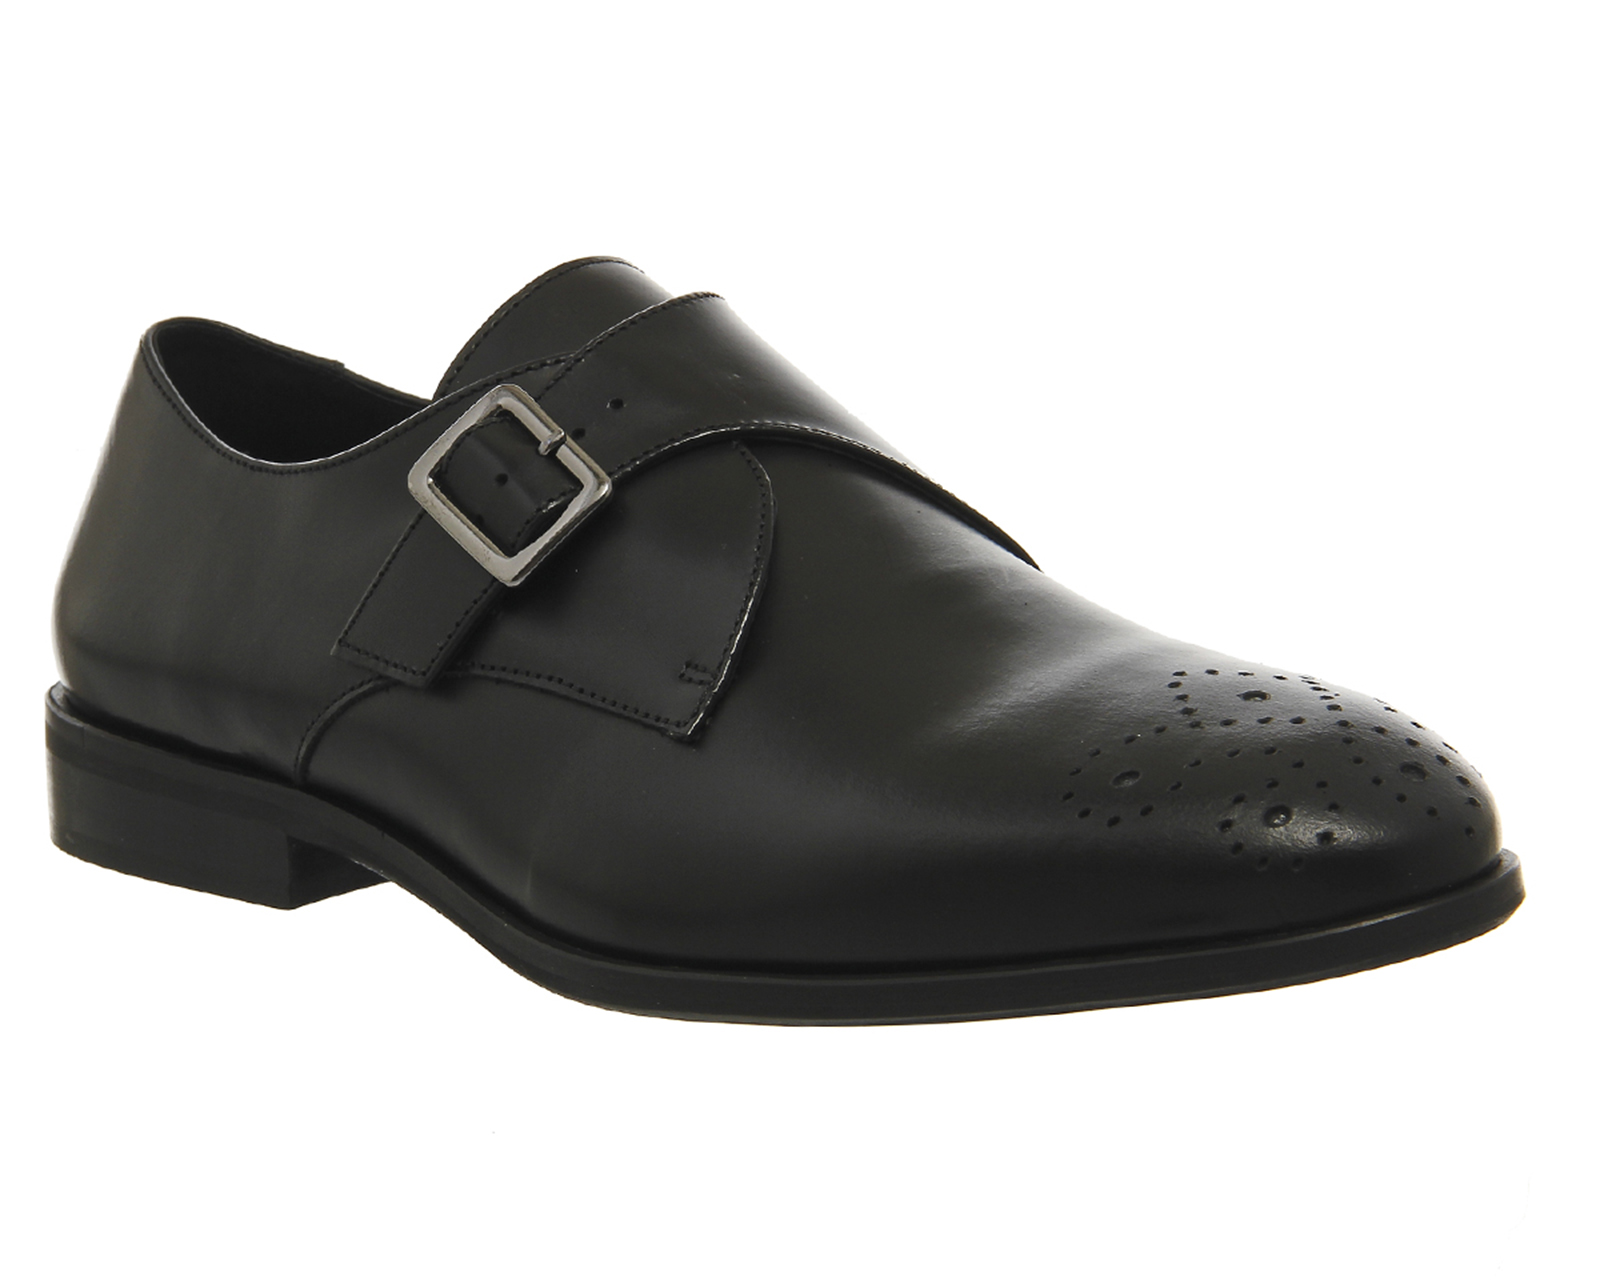 Mens Ask the Missus Black Leather Buckle Formal Shoes UK Size 9 *Ex Display